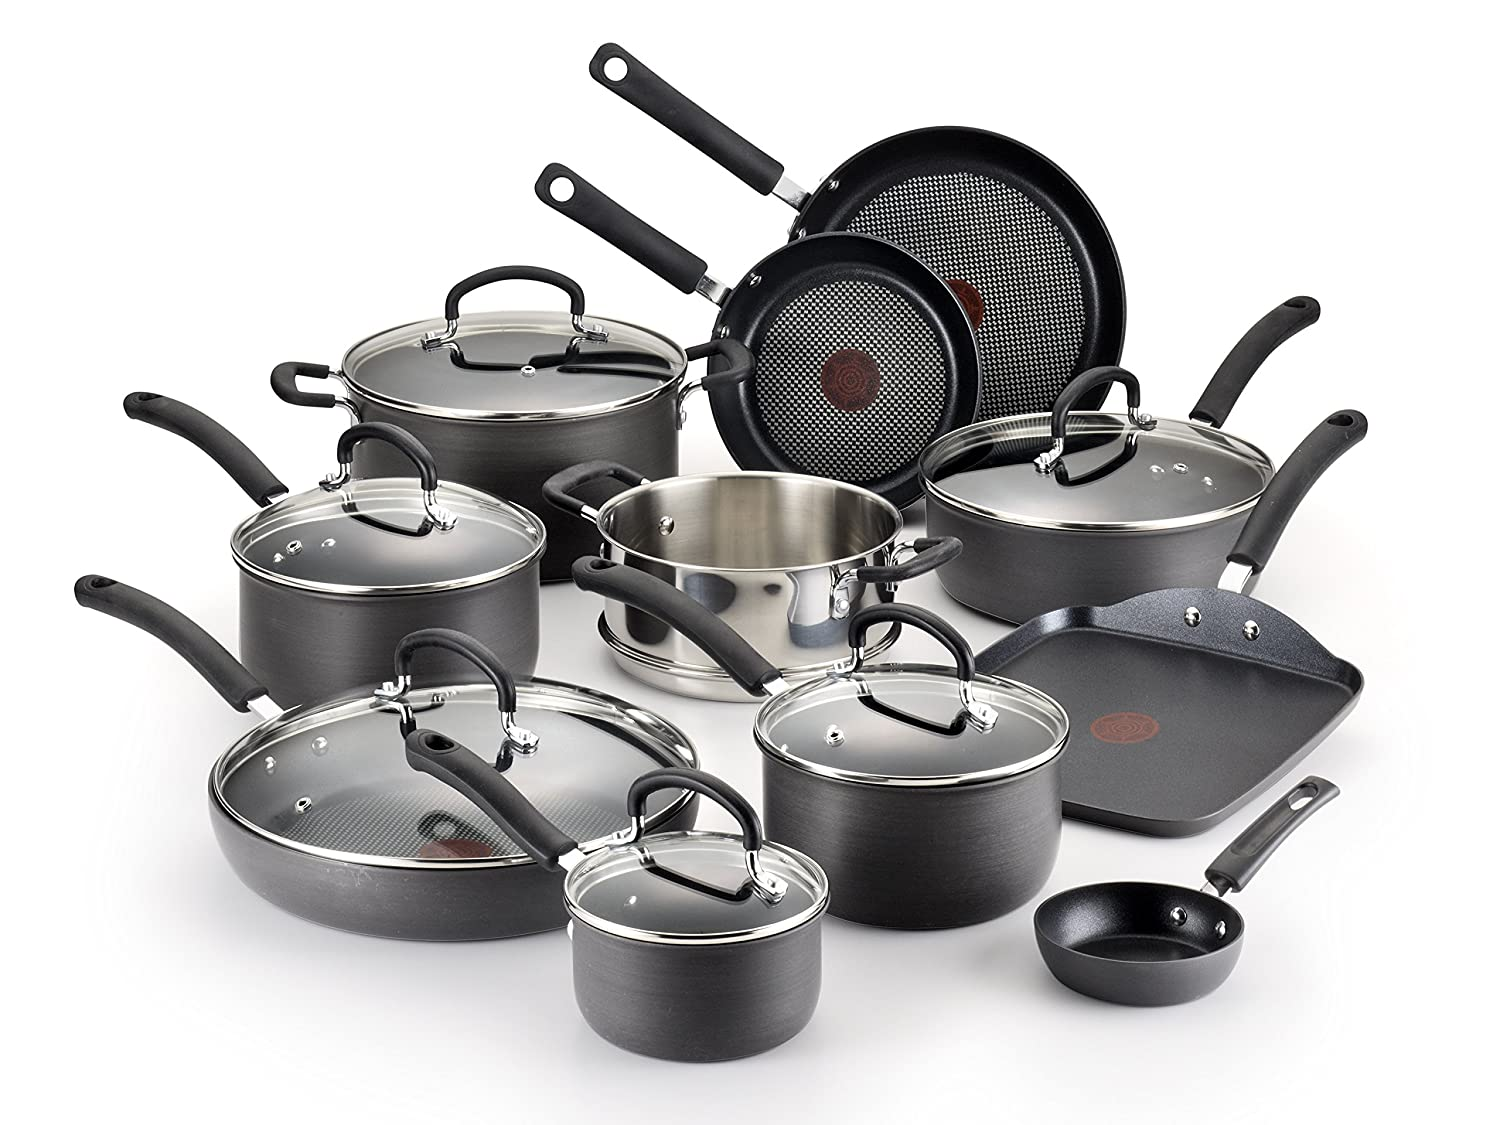 T-Fal E765SH Titanium Nonstick Cookware Set, 17-Piece, Gray Via Amazon